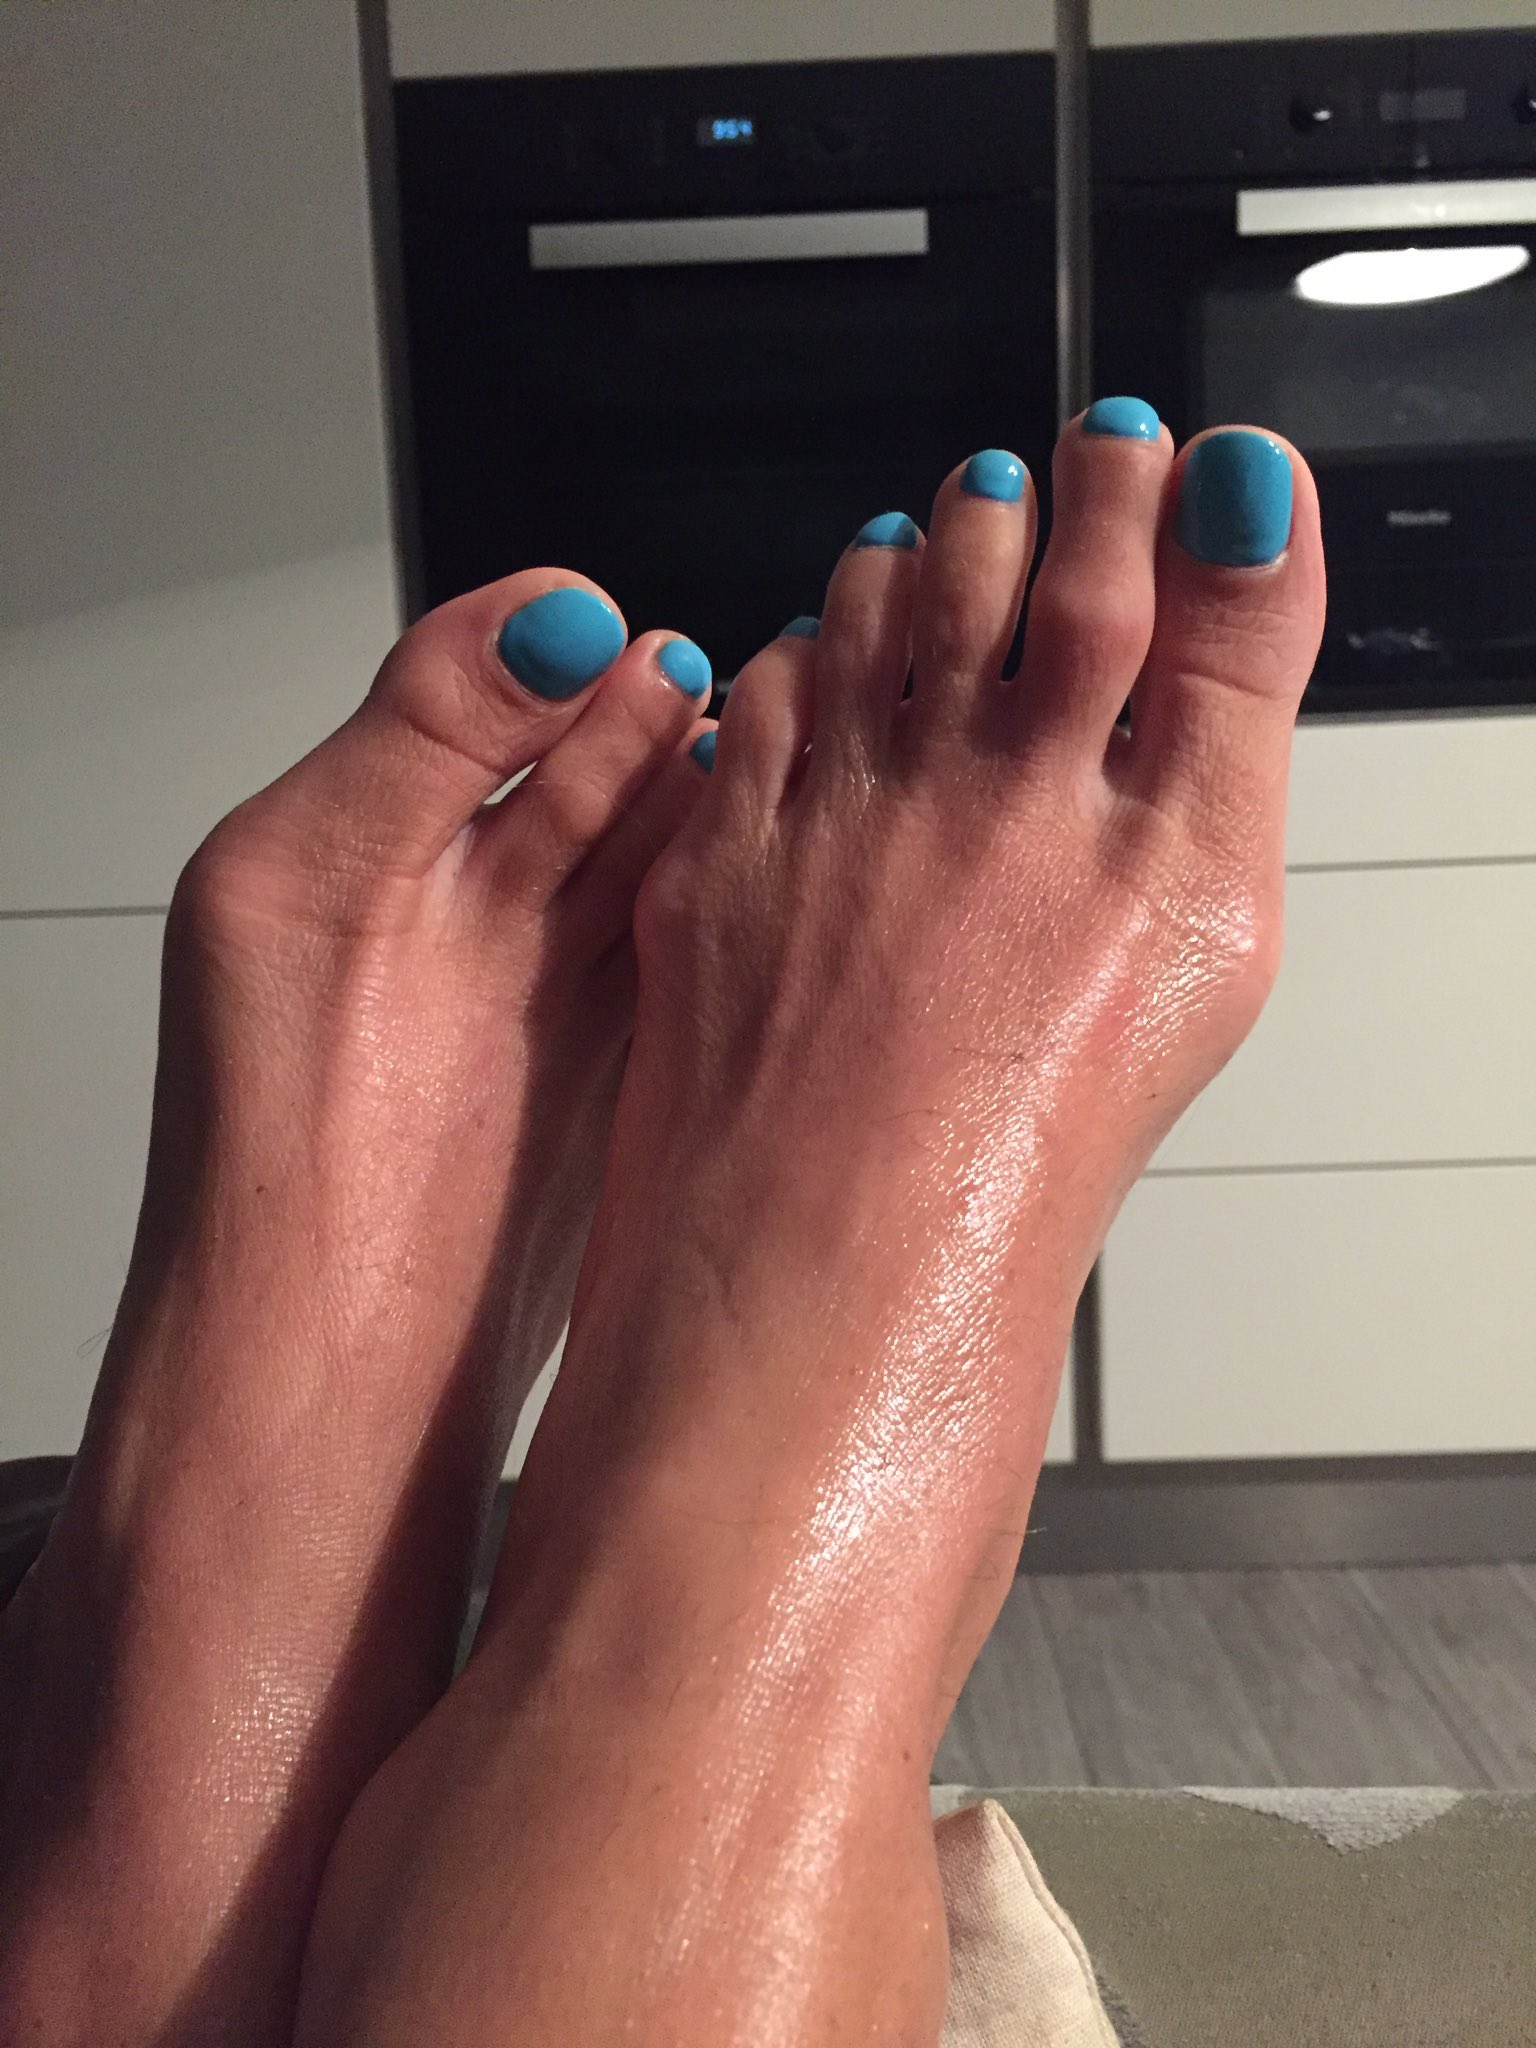 Do you like showing off your pantyhose feet? - Quora